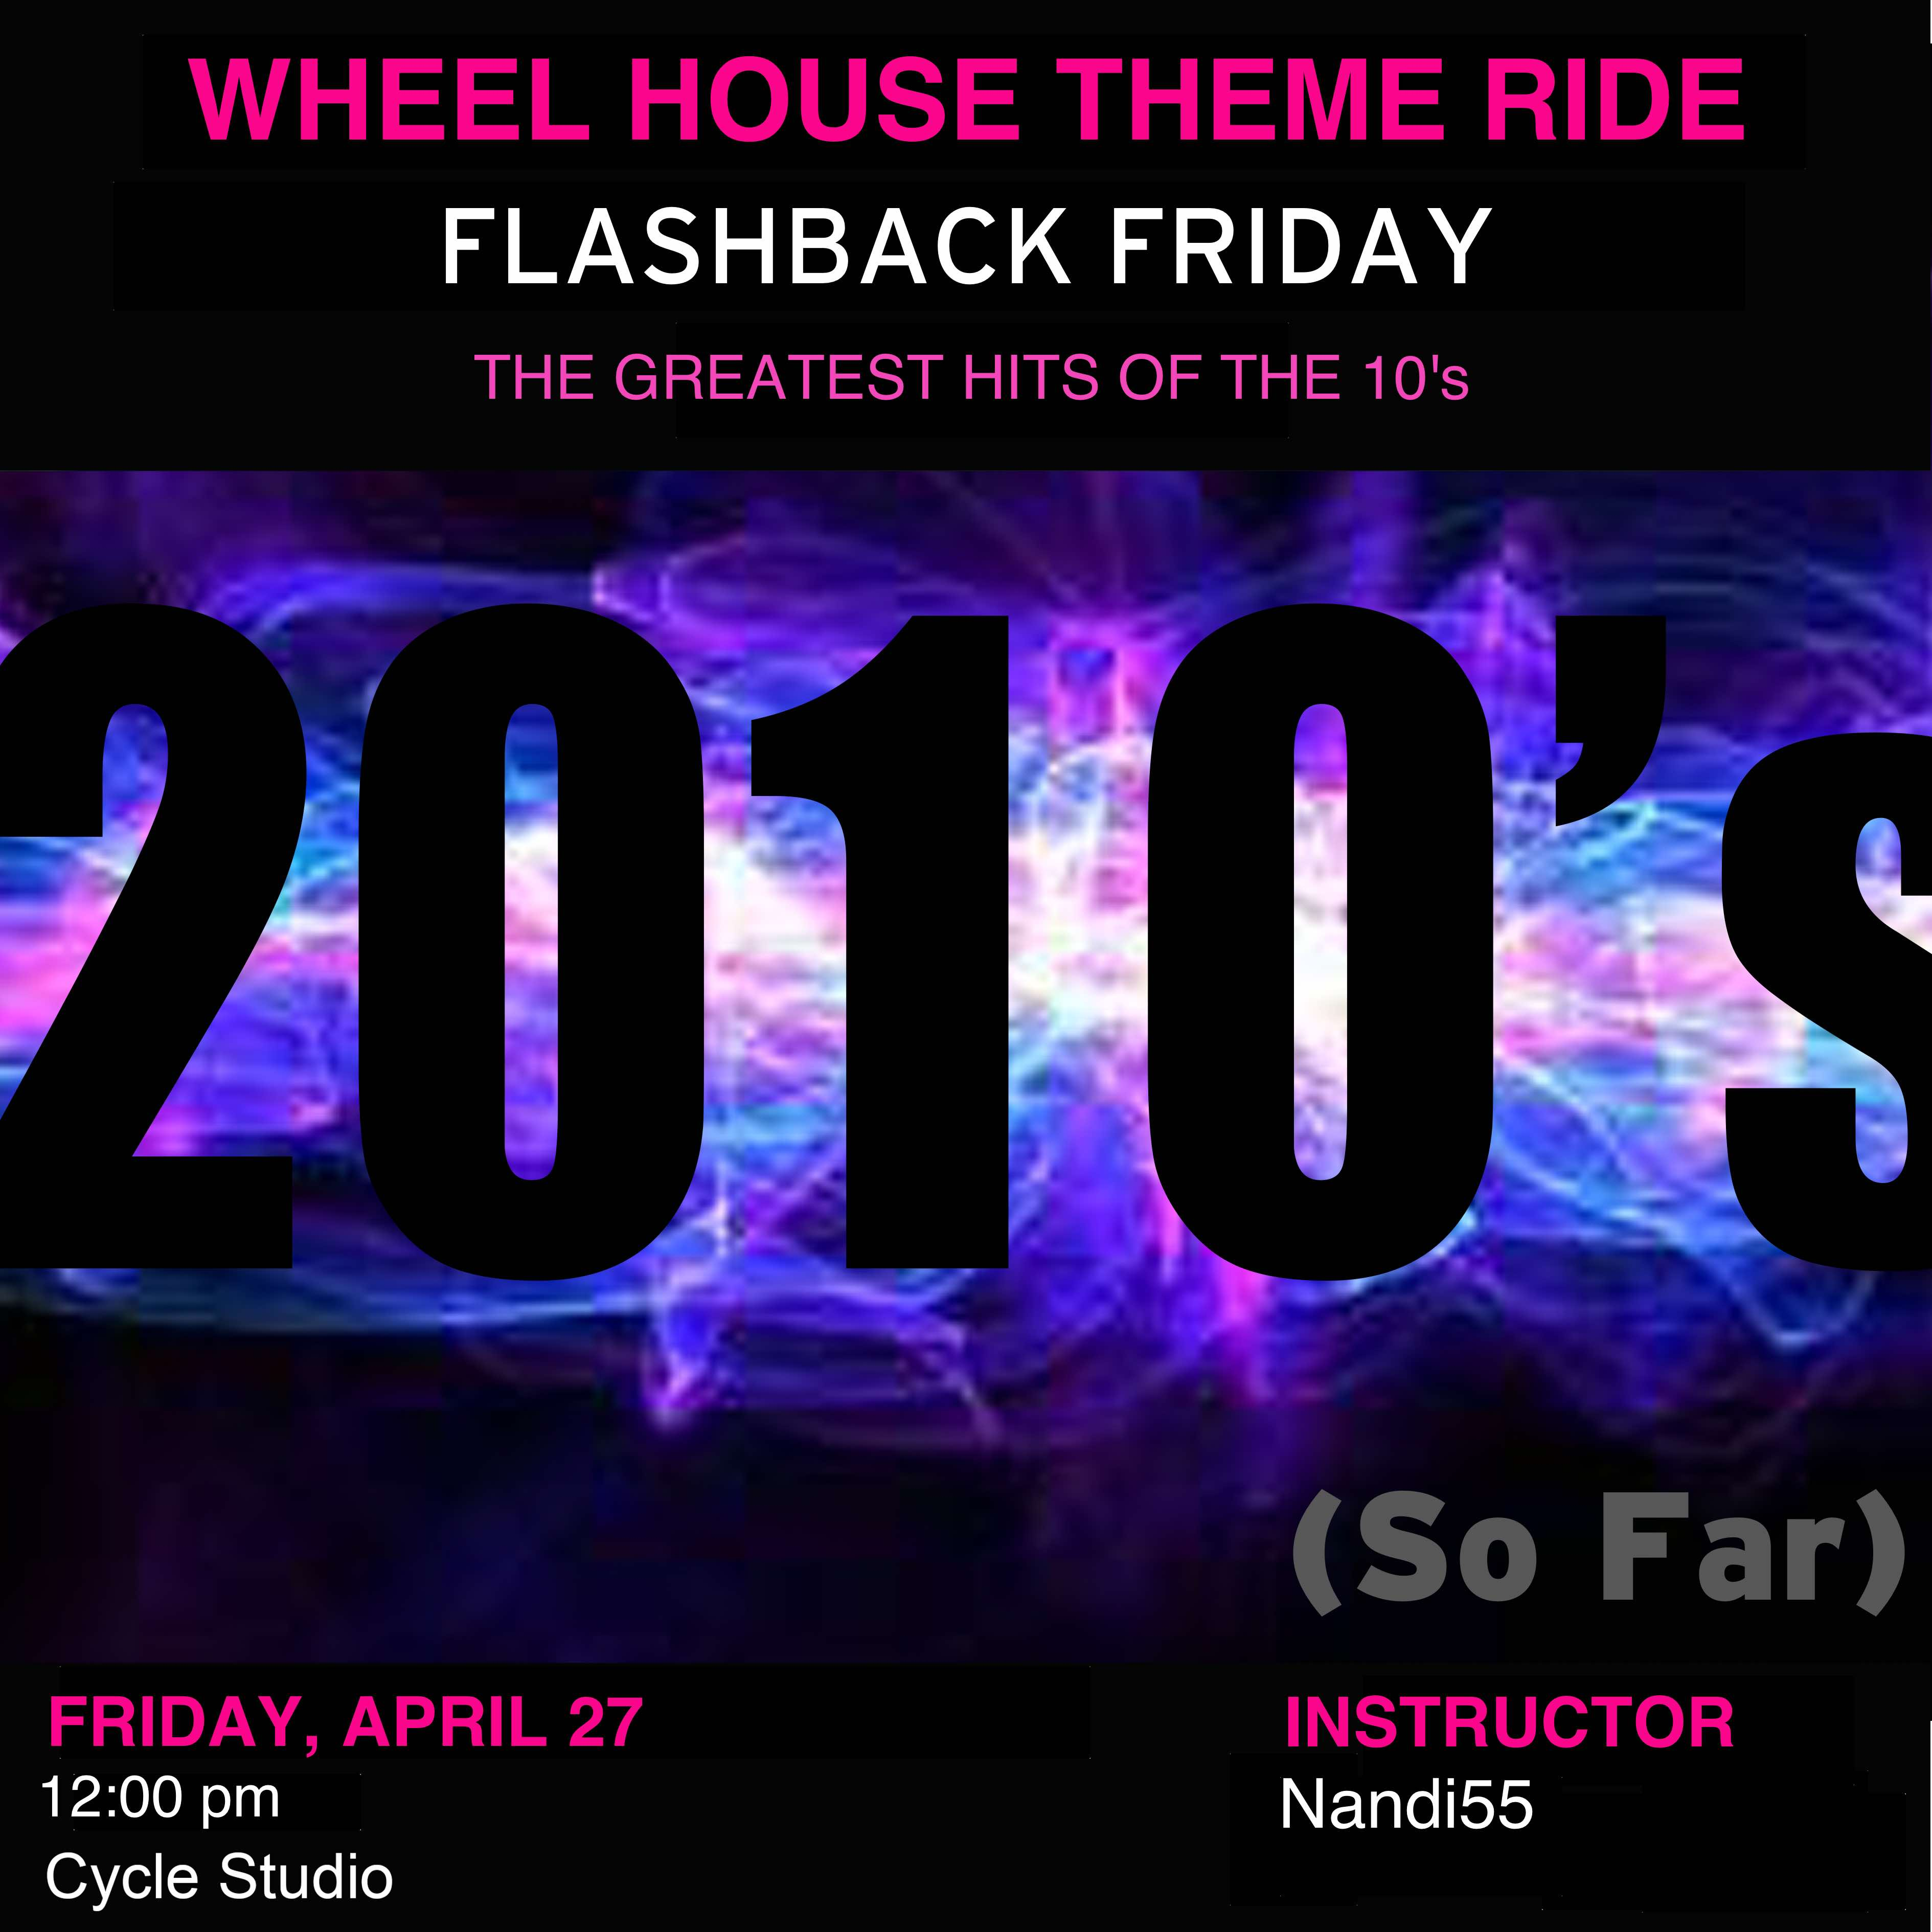 Flashback Friday - The Greatest Hits Of The 10's